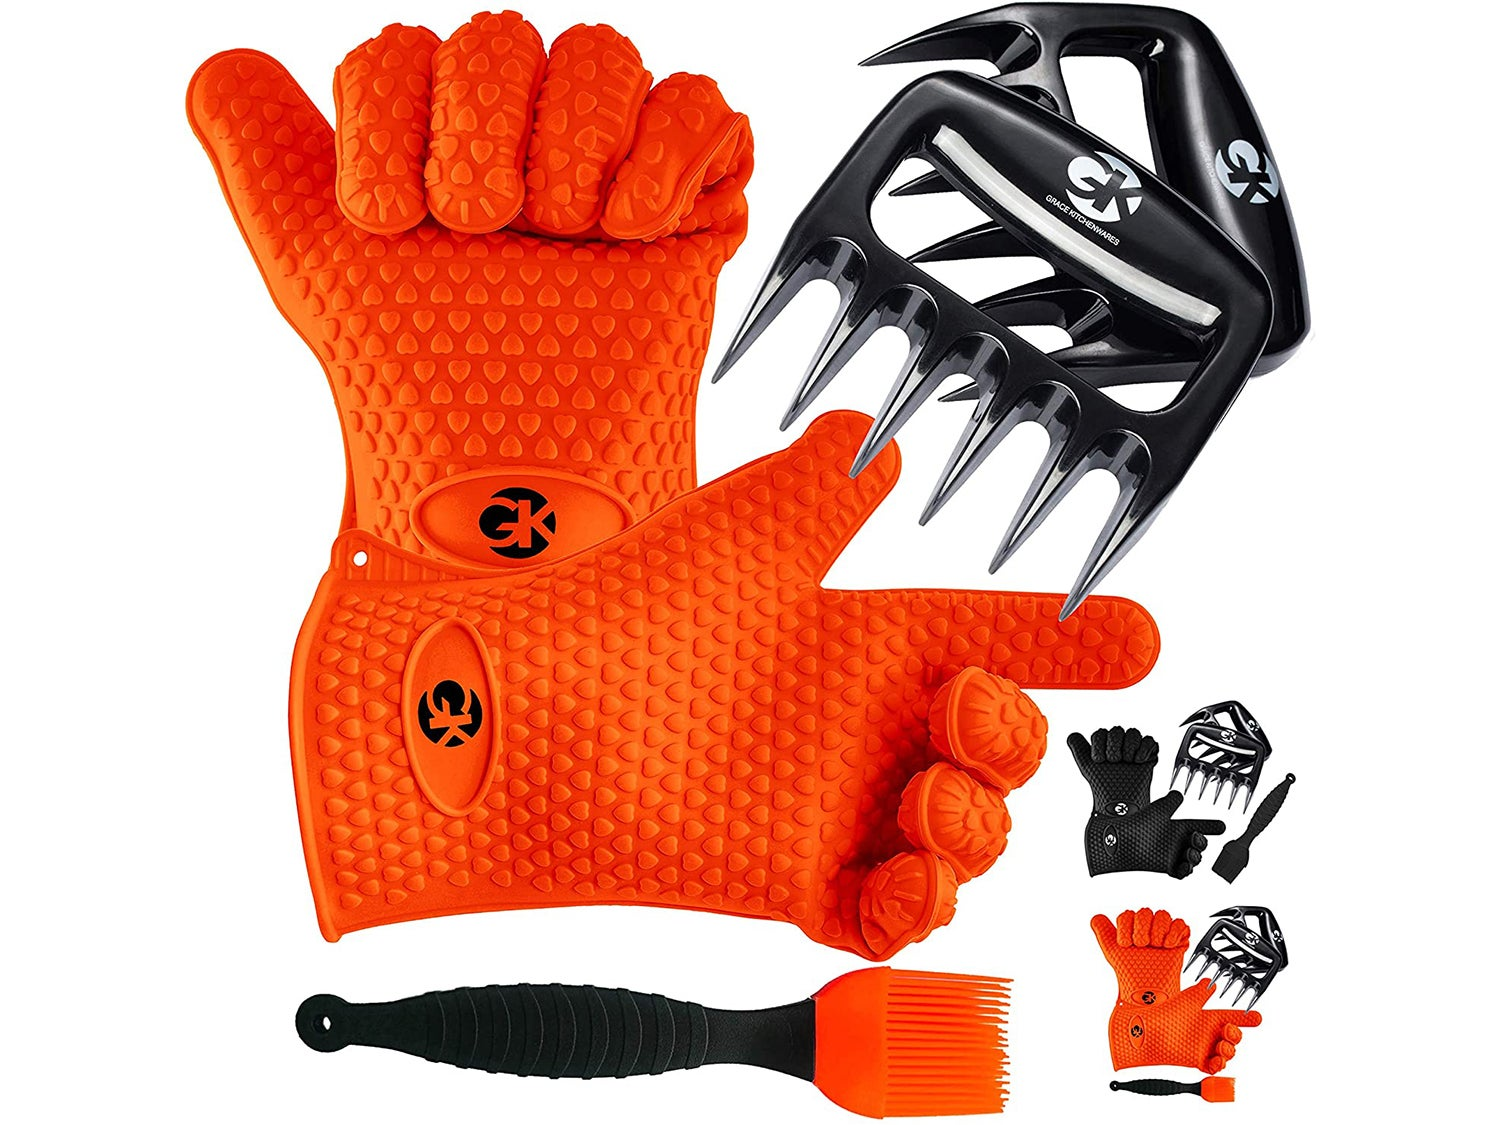 GK's 3 + 3 BBQ Man's Dream Set: Silicone BBQ Grill Gloves Plus Meat Shredder Claws Plus Silicone Basting Brush Plus 3 eBooks